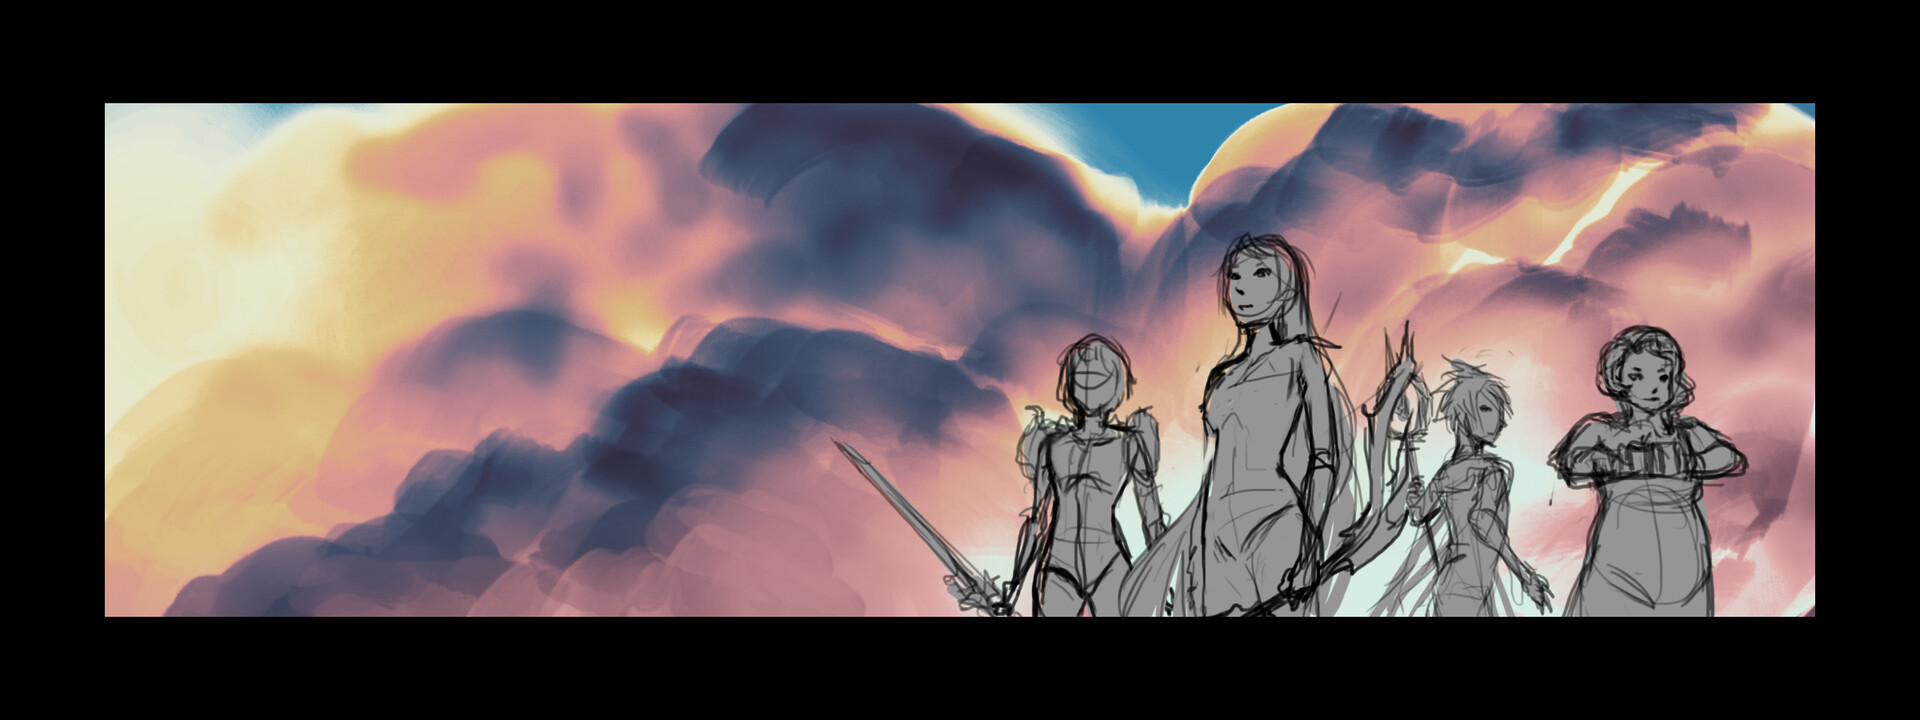 The early sketch for the banner art.